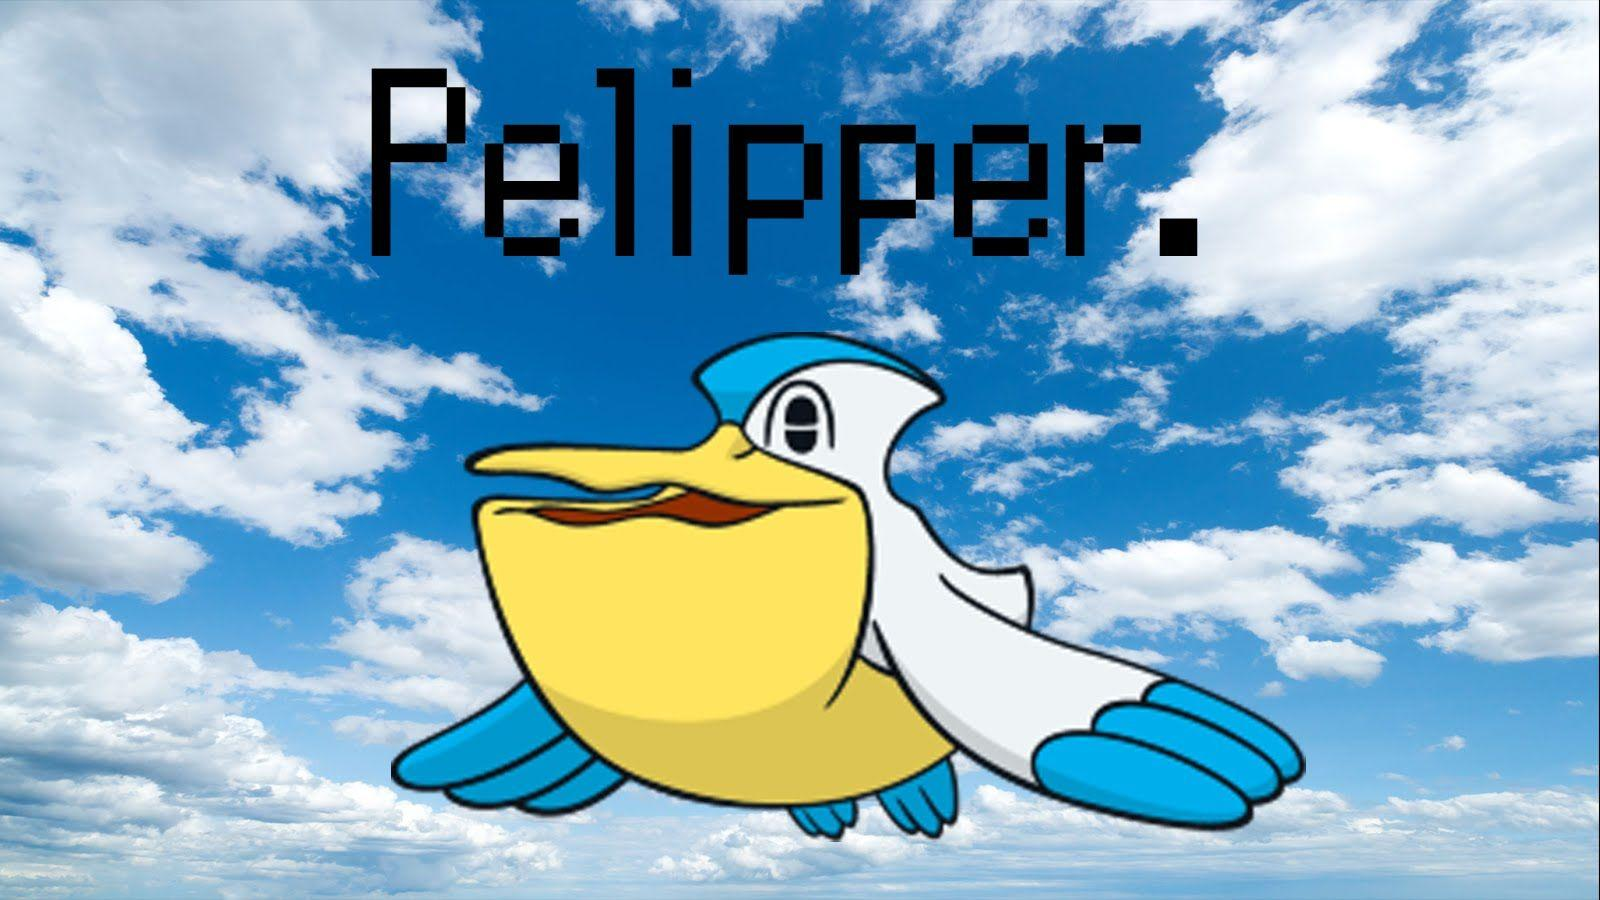 pelipper. - YouTube